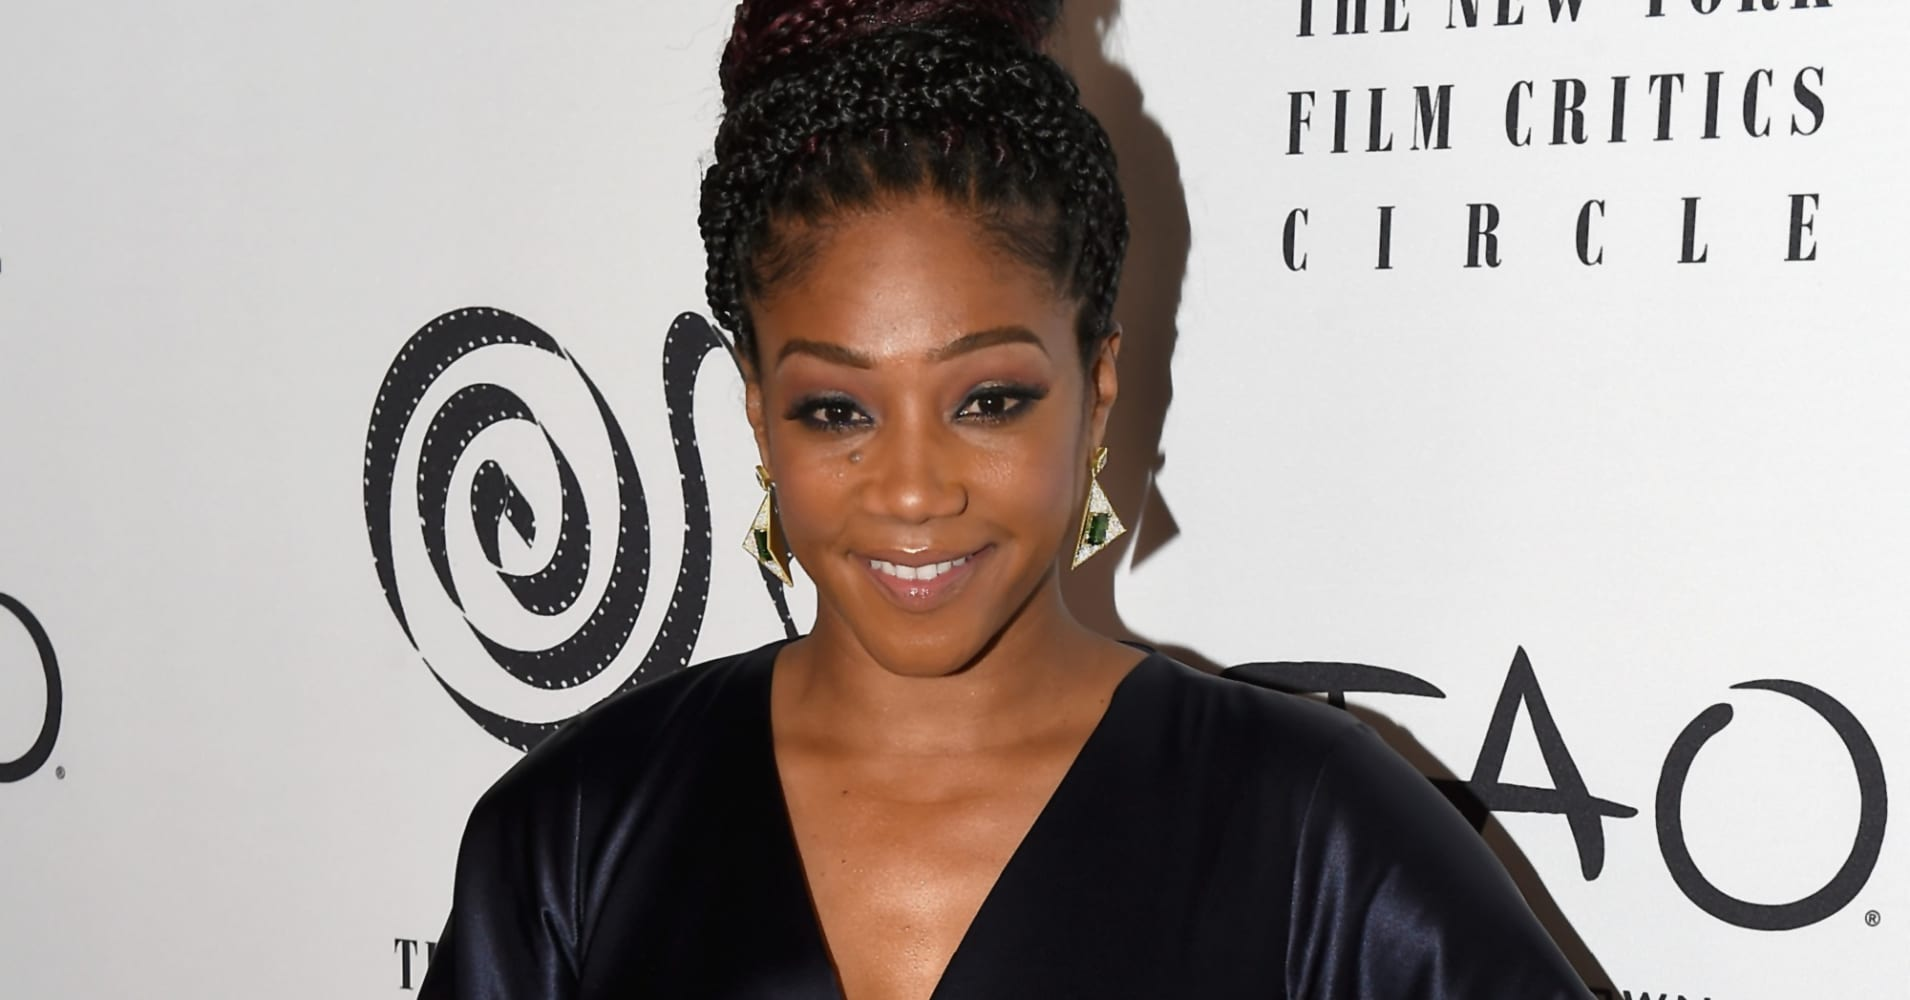 Tiffany Haddish on Kevin Hart Helping Her Out When She was Homeless